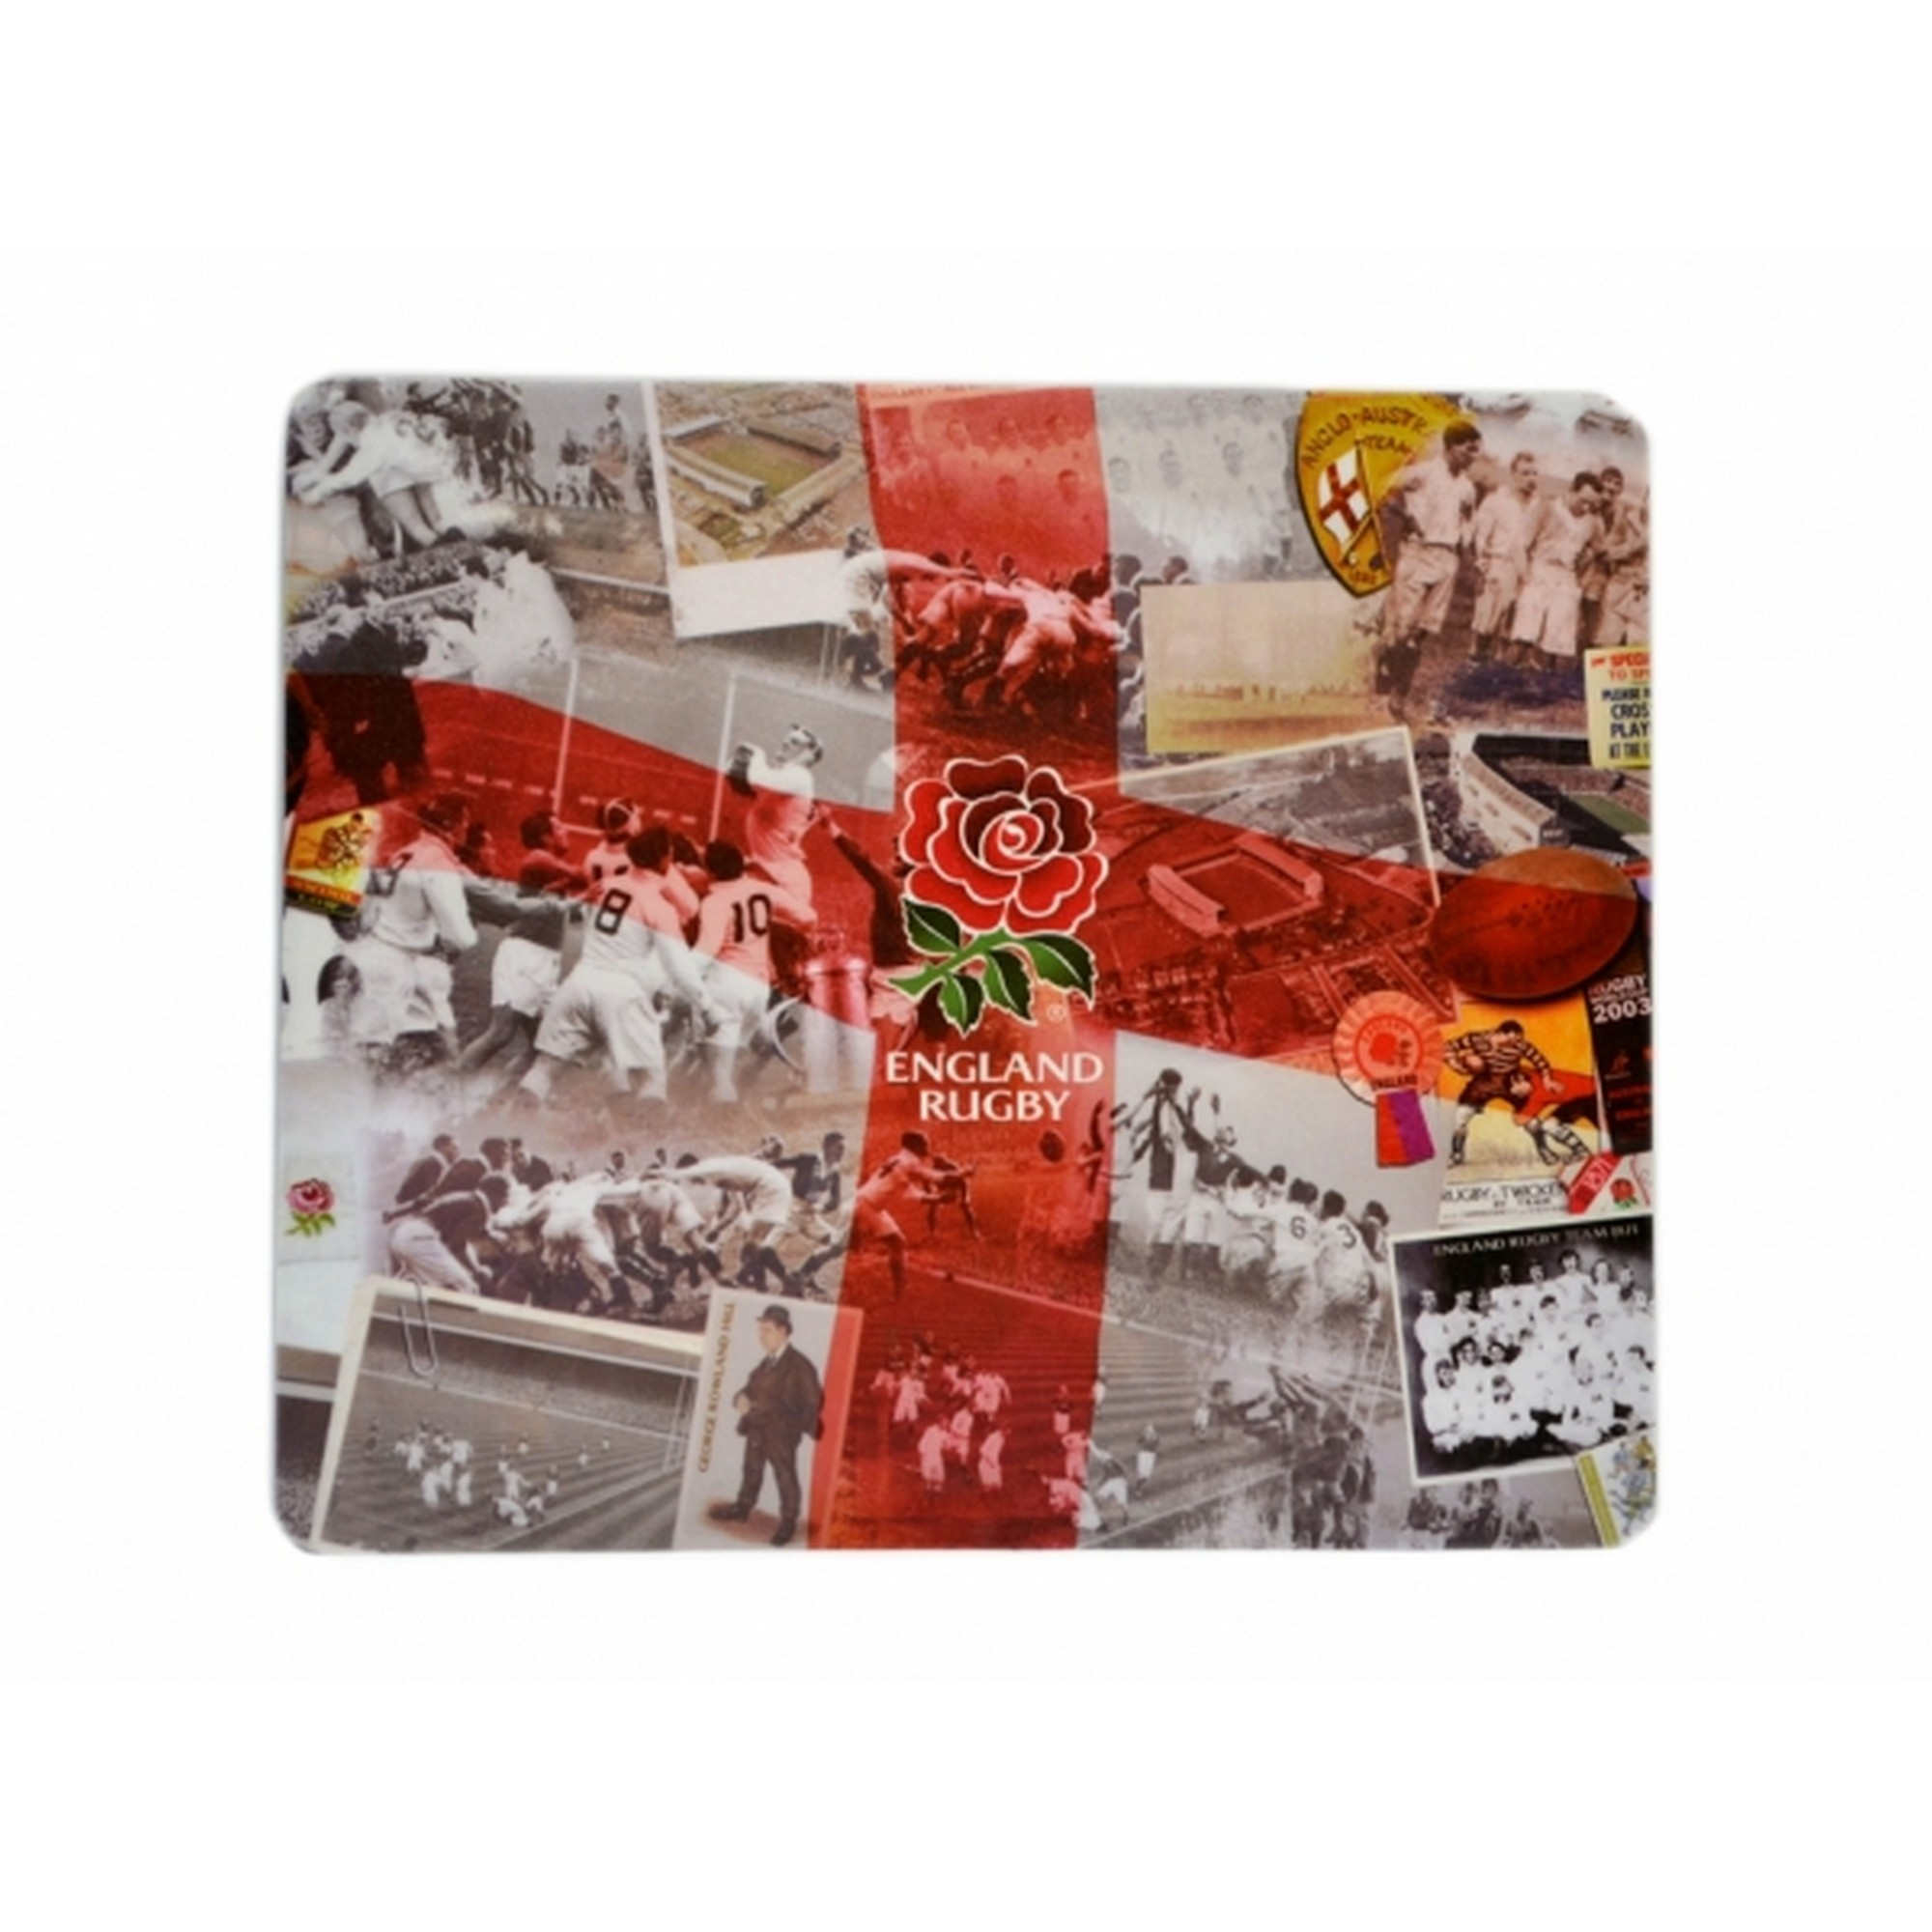 England RFU Official Rugby Retro Computer Mouse Mat (One Size) (Multicoloured)